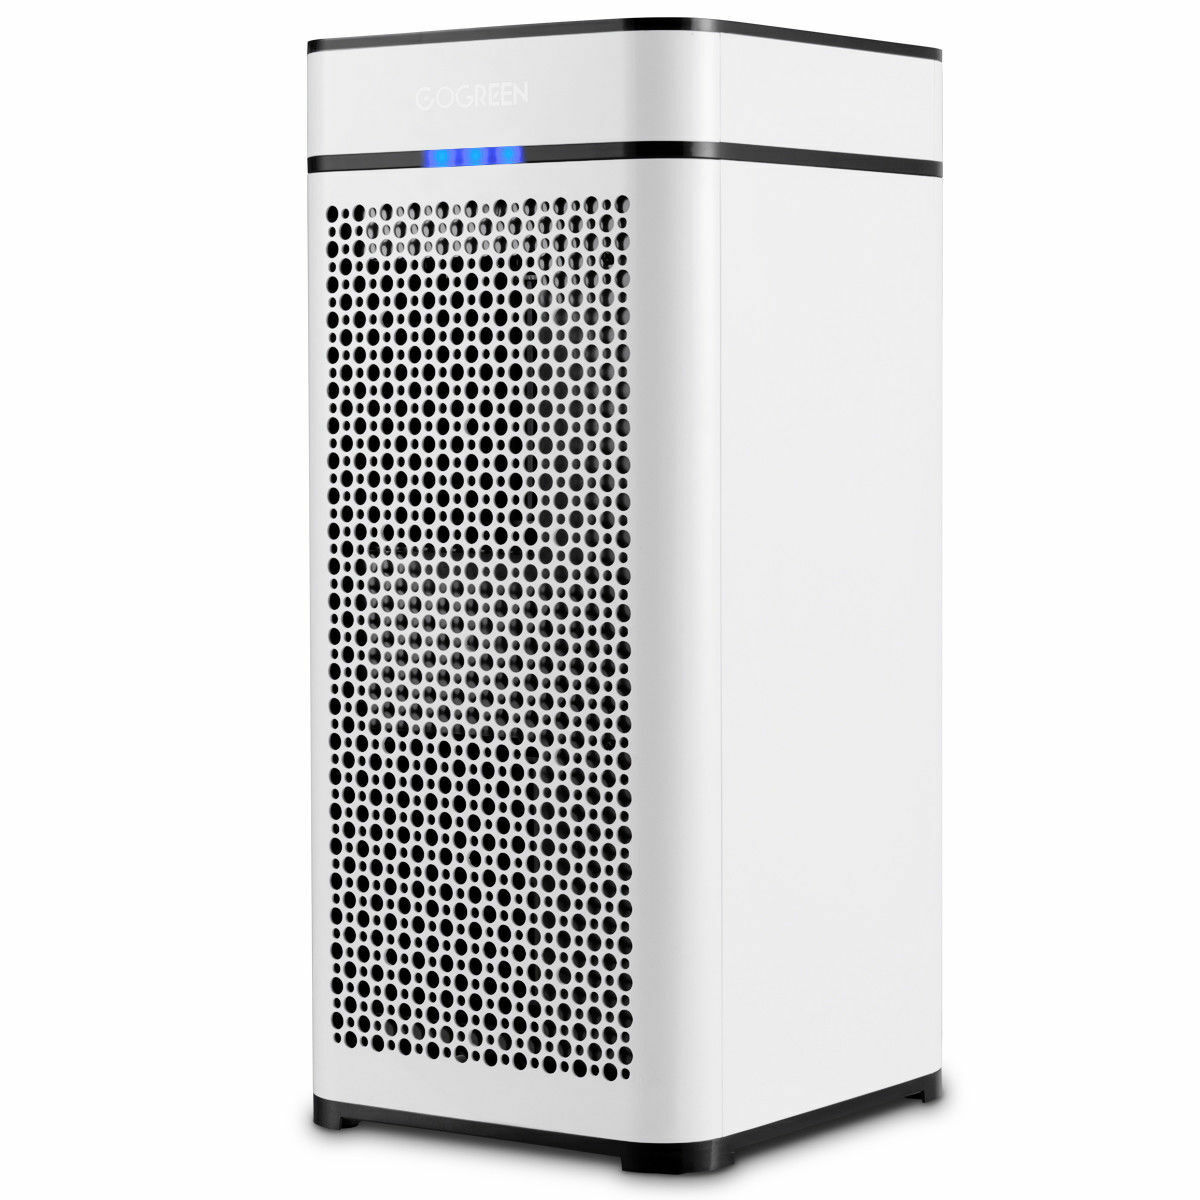 Air Purifier True HEPA Filter Activated Carbon Filter Air Cleaner Cover 430sq.ft